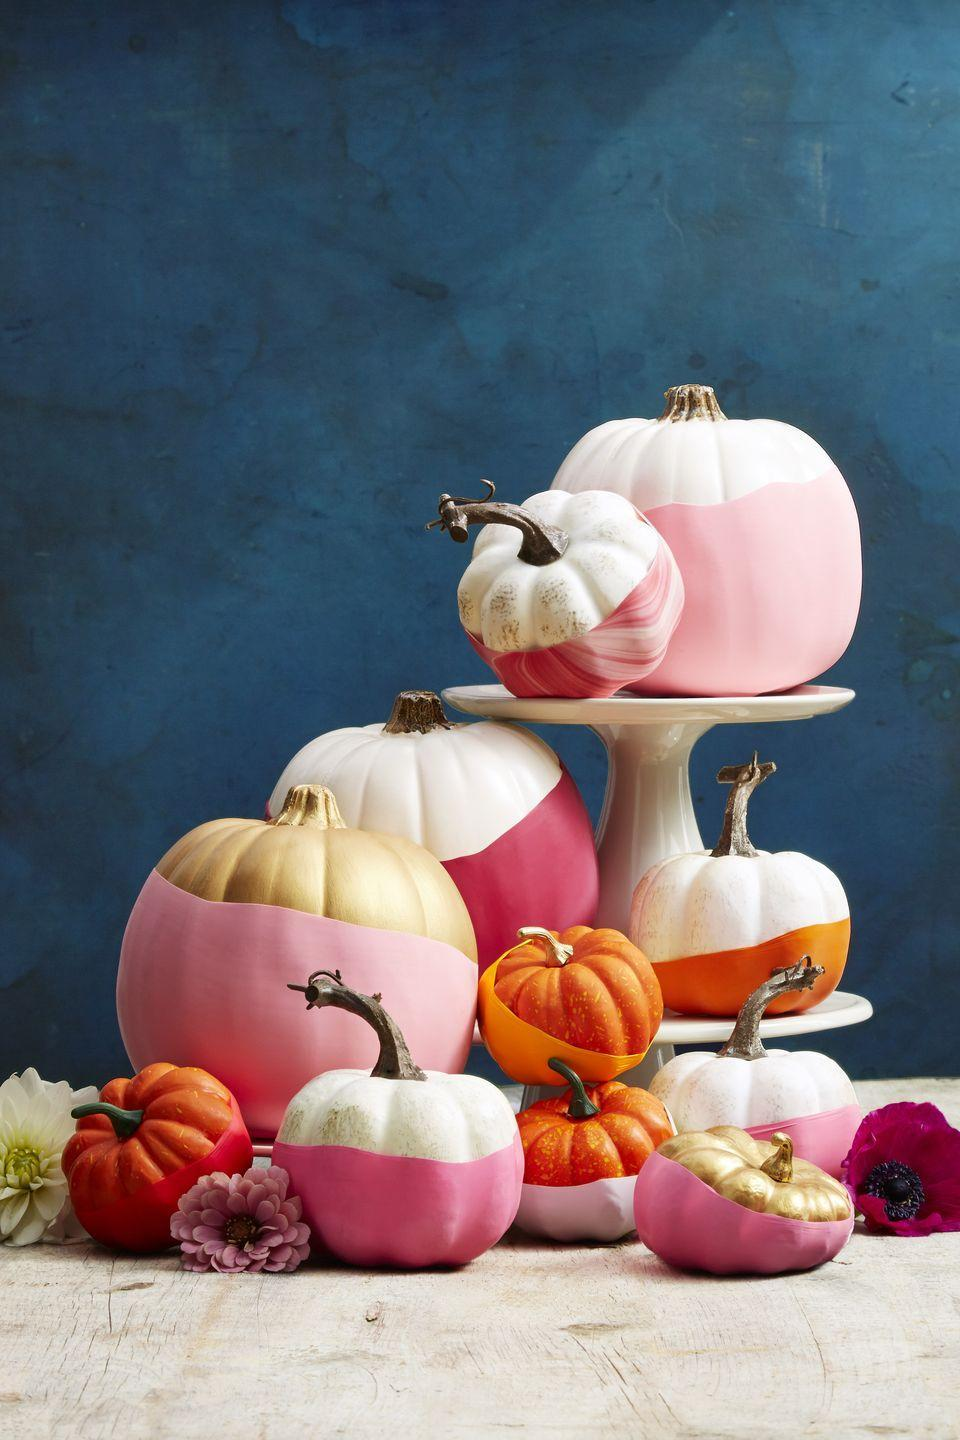 "<p>We spotted this <a href=""http://www.papernstitchblog.com/2015/10/12/easiest-no-carve-pumpkin-idea-balloon-dipped-pumpkins-diy/"" rel=""nofollow noopener"" target=""_blank"" data-ylk=""slk:&quot;dipped&quot;-looking pumpkin DIY"" class=""link rapid-noclick-resp"">""dipped""-looking pumpkin DIY</a> on Brittni Mehlhoff's blog, <a href=""http://www.papernstitchblog.com/"" rel=""nofollow noopener"" target=""_blank"" data-ylk=""slk:Paper & Stitch"" class=""link rapid-noclick-resp"">Paper & Stitch</a>, and put it on our cover. For a pop of color, snip the ends off opaque balloons (11 inches for mini pumpkins, larger for the big guys) and stretch around the bases. </p><p><a class=""link rapid-noclick-resp"" href=""https://www.amazon.com/MESHA-Inches-Assorted-Color-Balloons/dp/B017R22JJS?tag=syn-yahoo-20&ascsubtag=%5Bartid%7C10055.g.1714%5Bsrc%7Cyahoo-us"" rel=""nofollow noopener"" target=""_blank"" data-ylk=""slk:SHOP BALLOONS"">SHOP BALLOONS</a><br></p>"